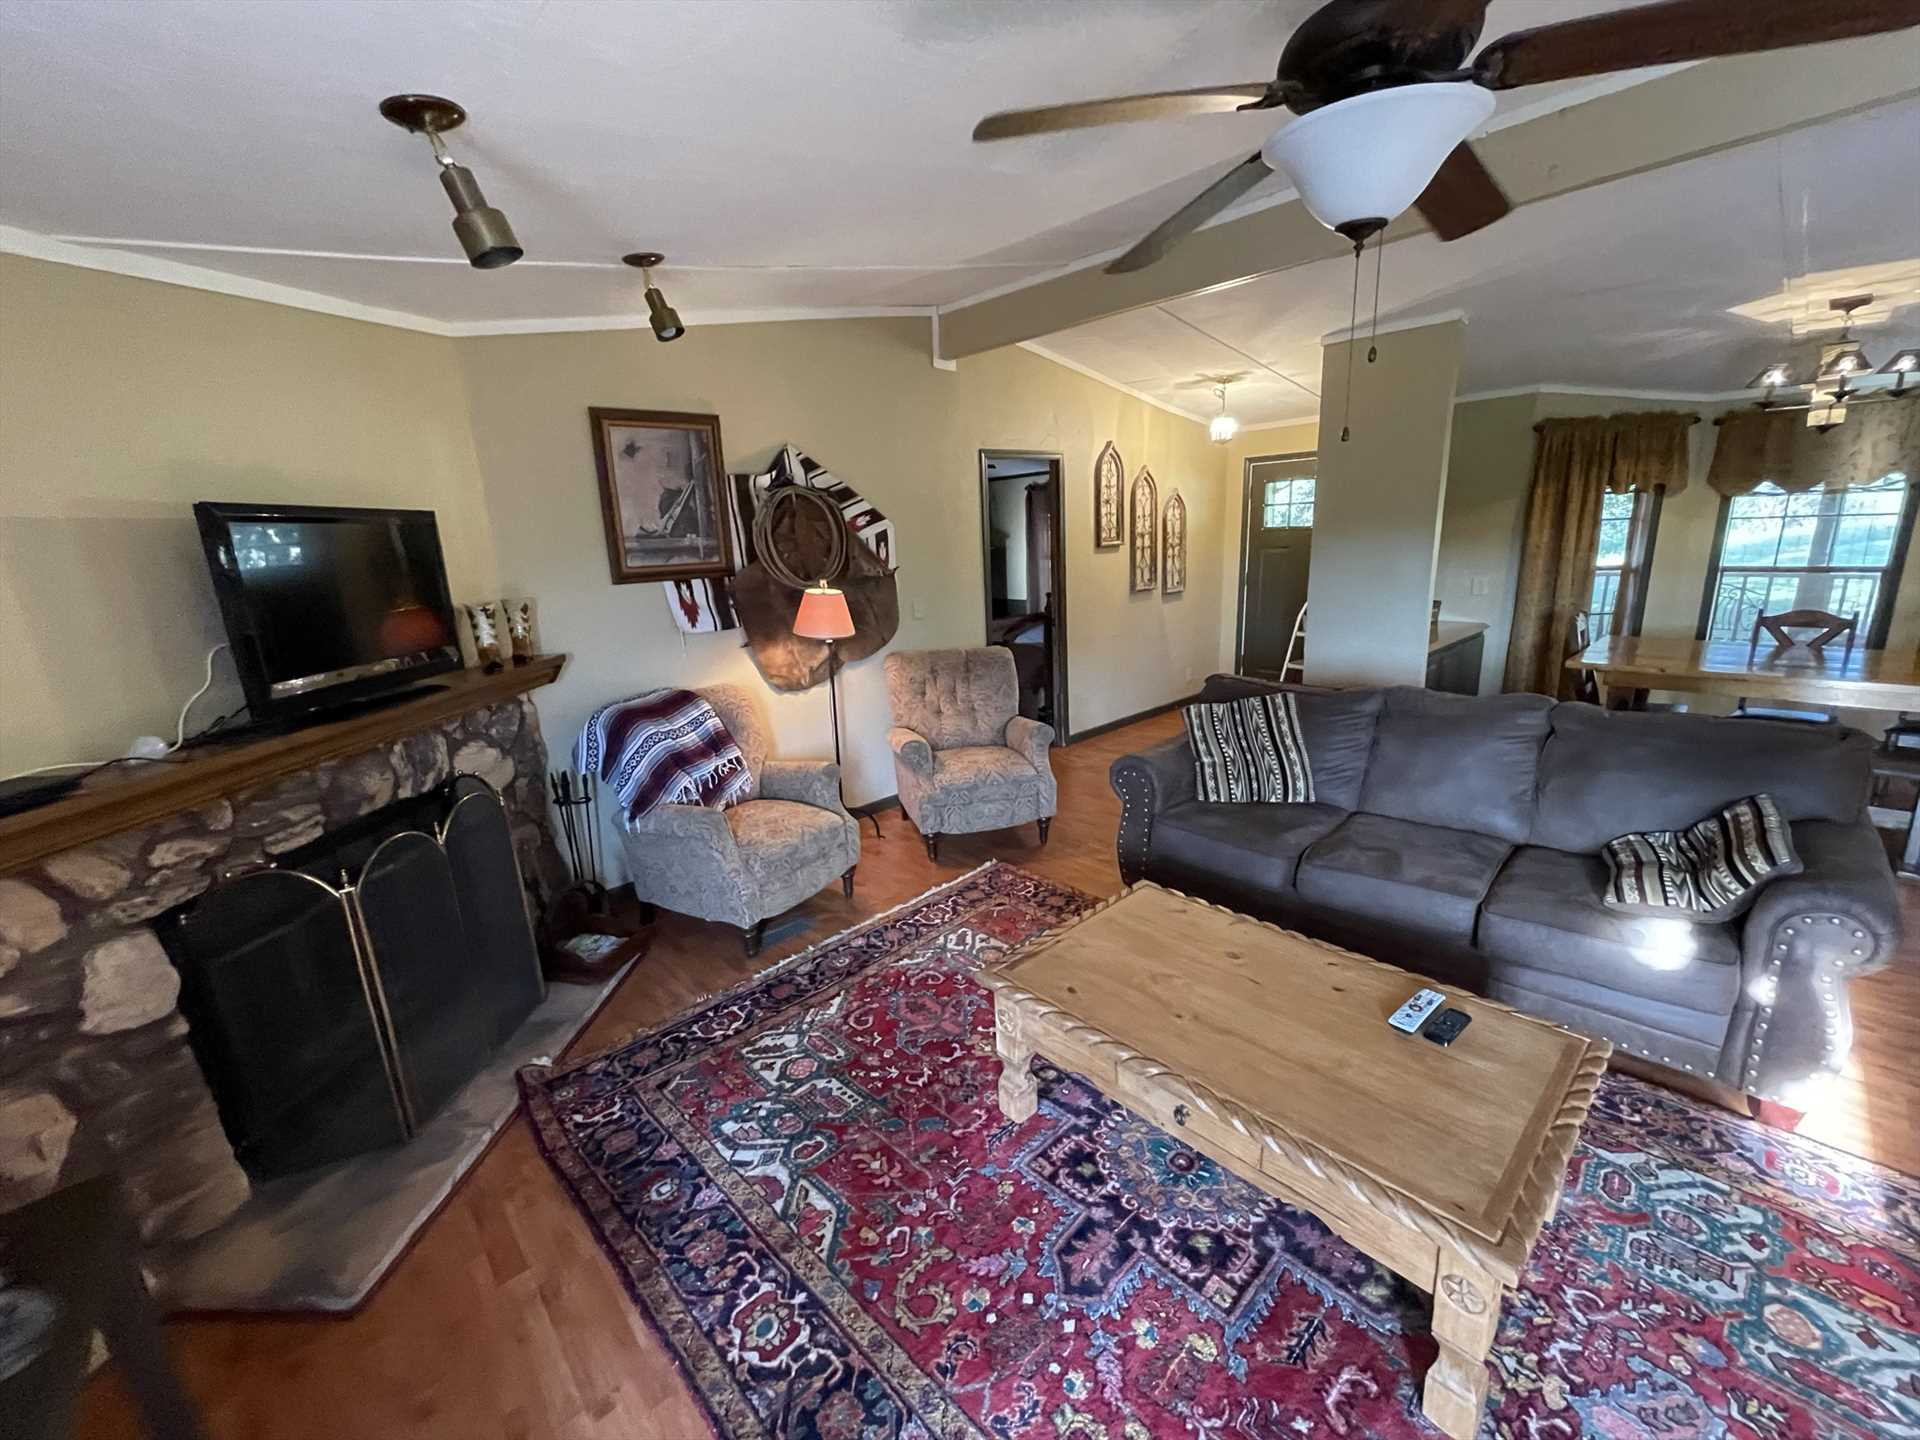 The living area is an amazing hang-out spot, there's a fireplace, smart TV with satellite service, Wifi, and plenty of space and plush furniture.